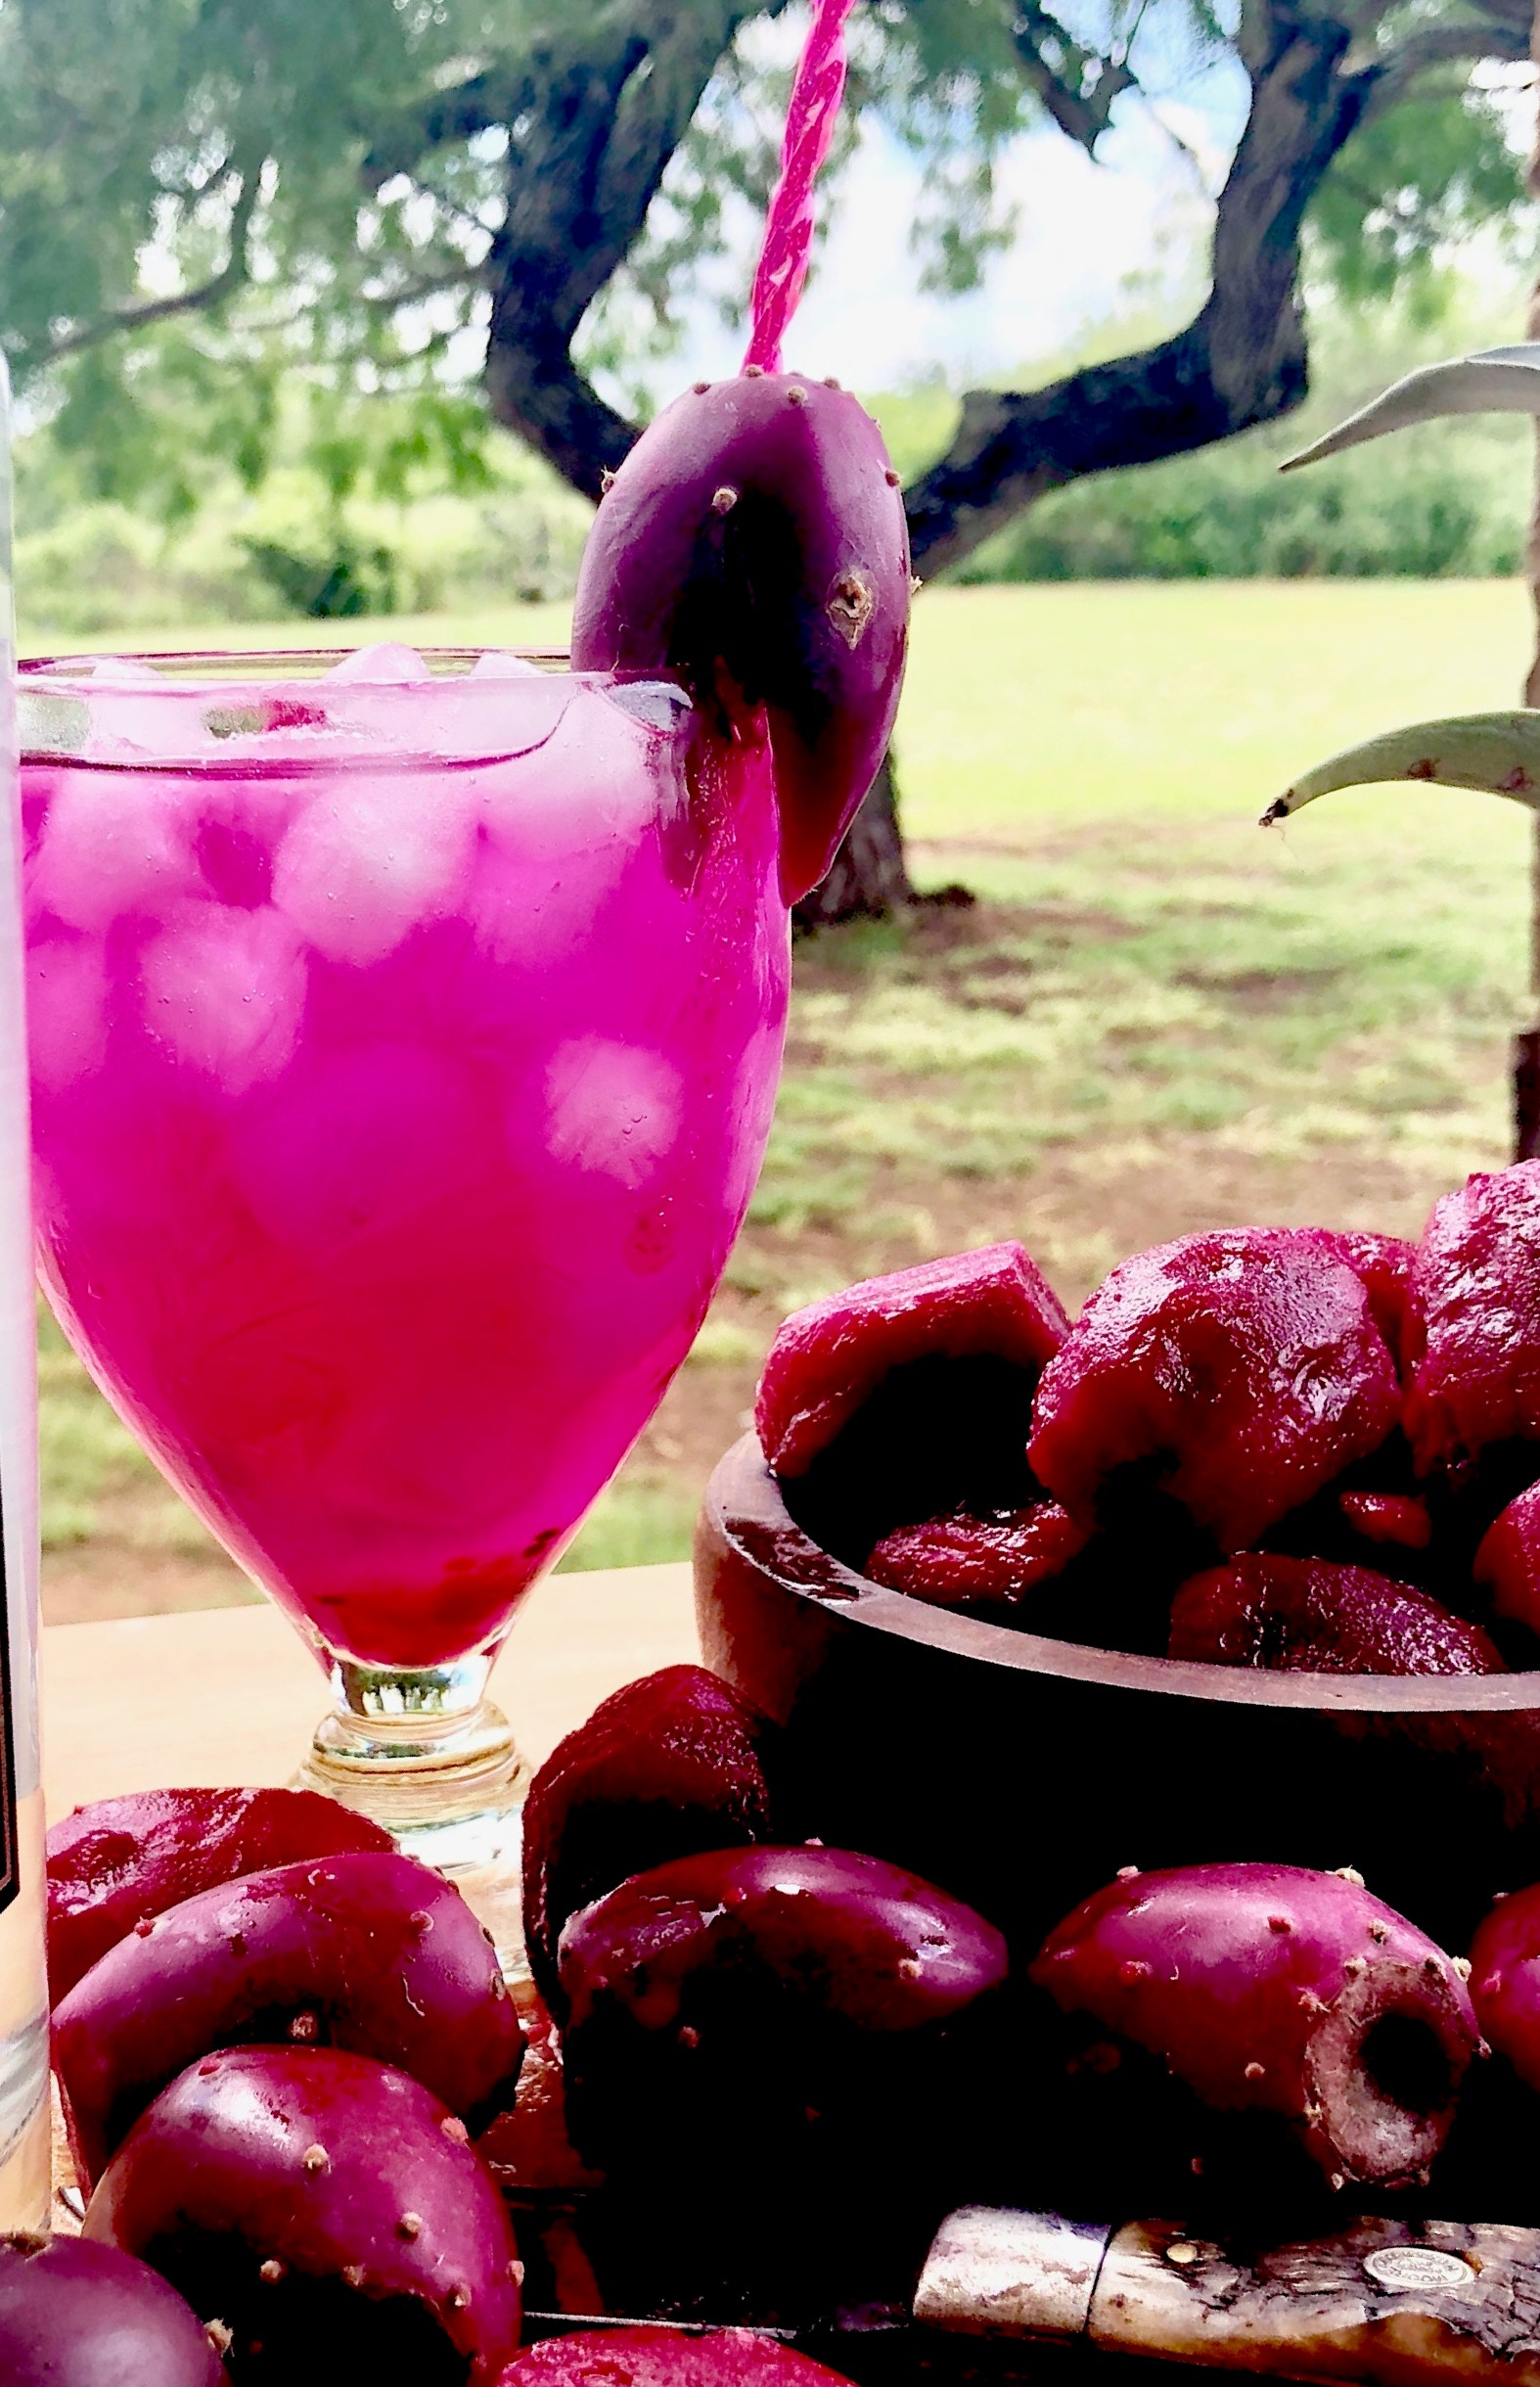 WRV TEXAS PRICKLY:  2 ounces of one mini bottle of Wild Rag Mesquite Bean Vodka  2 ounces of Crushed/drained Prickly Pear 2 ounces sparkling water of your choice  Pour all ingredients into a rocks glass filled with ice and garnish with Prickly Pear.